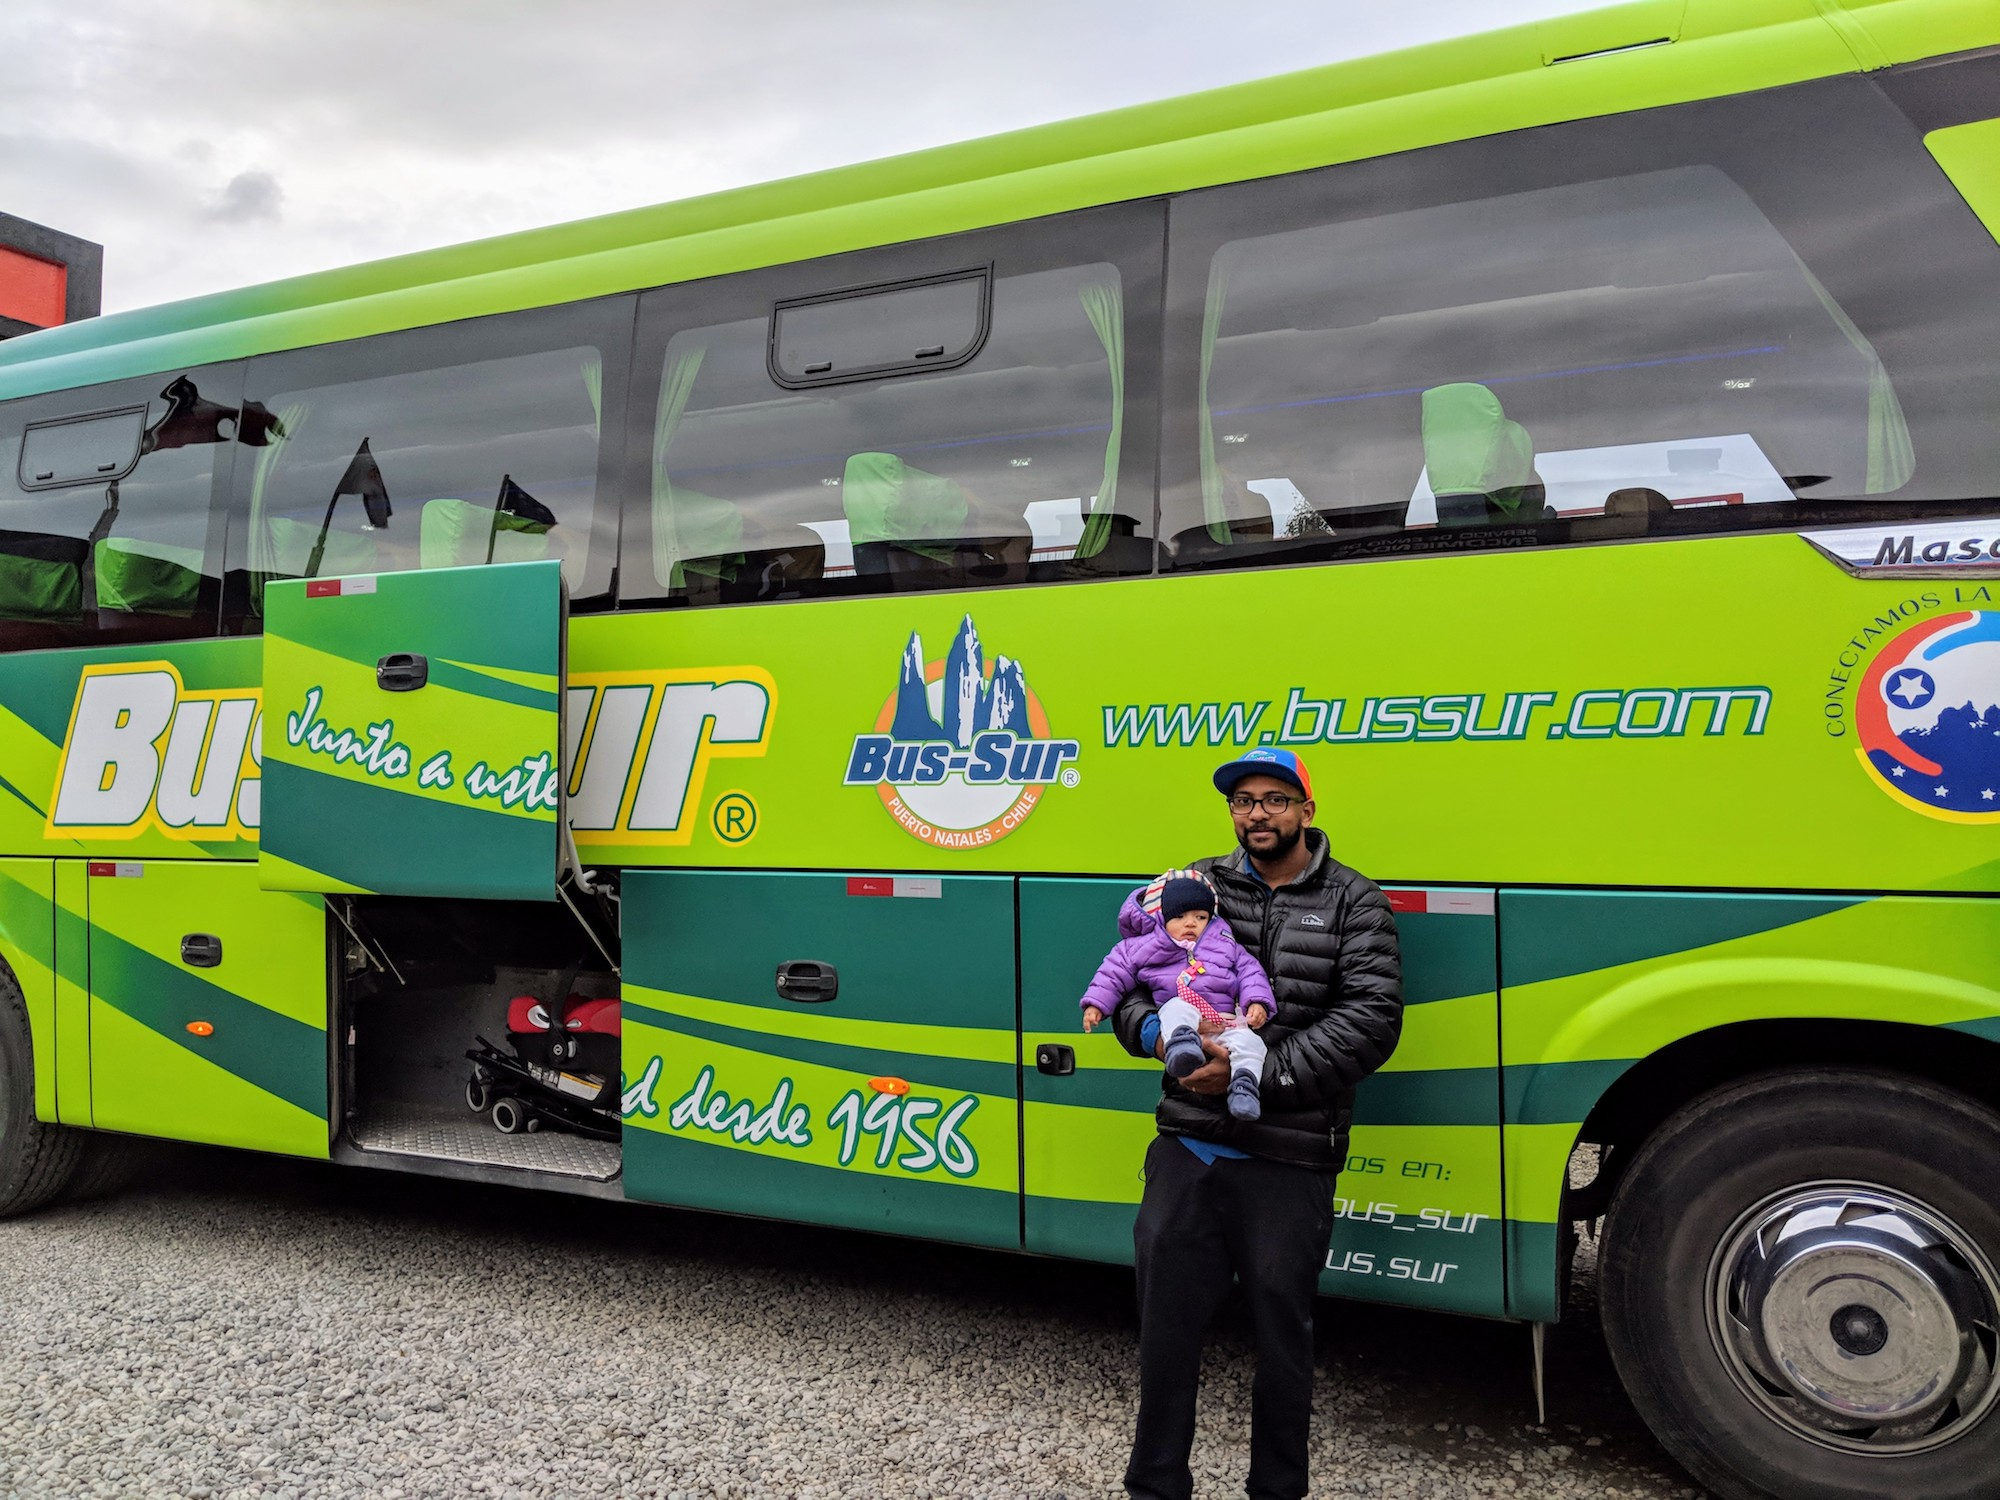 Taking a bus in Patagonia with a baby using Bus-Sur